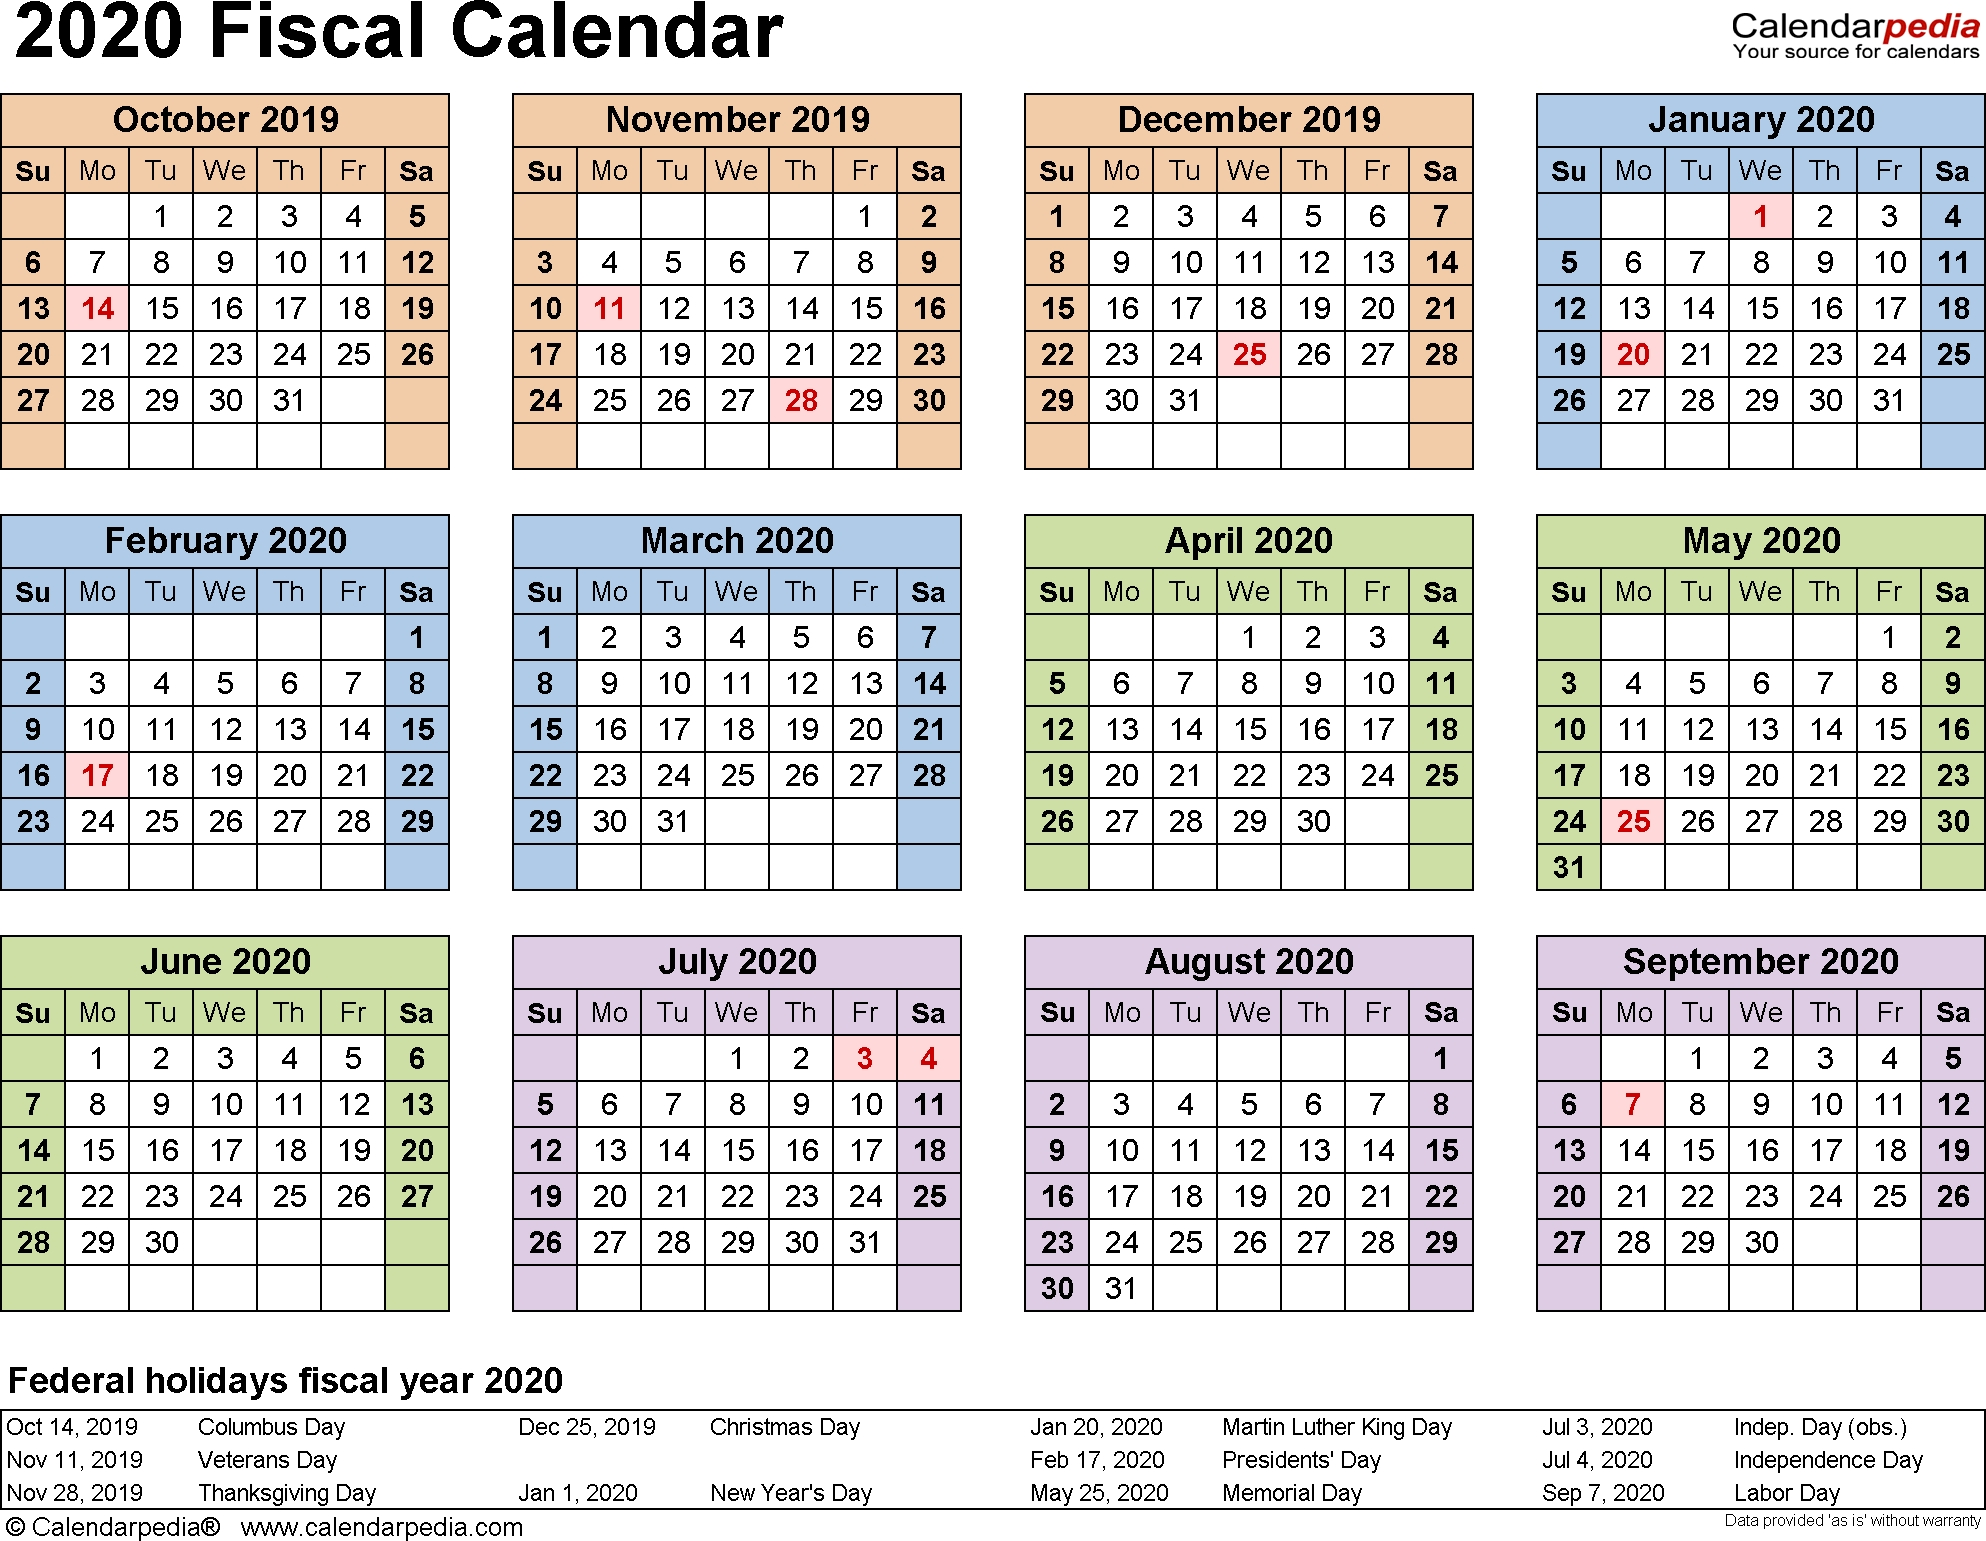 Fiscal Calendars 2020 As Free Printable Word Templates with Tax Calendar For 2019/2020